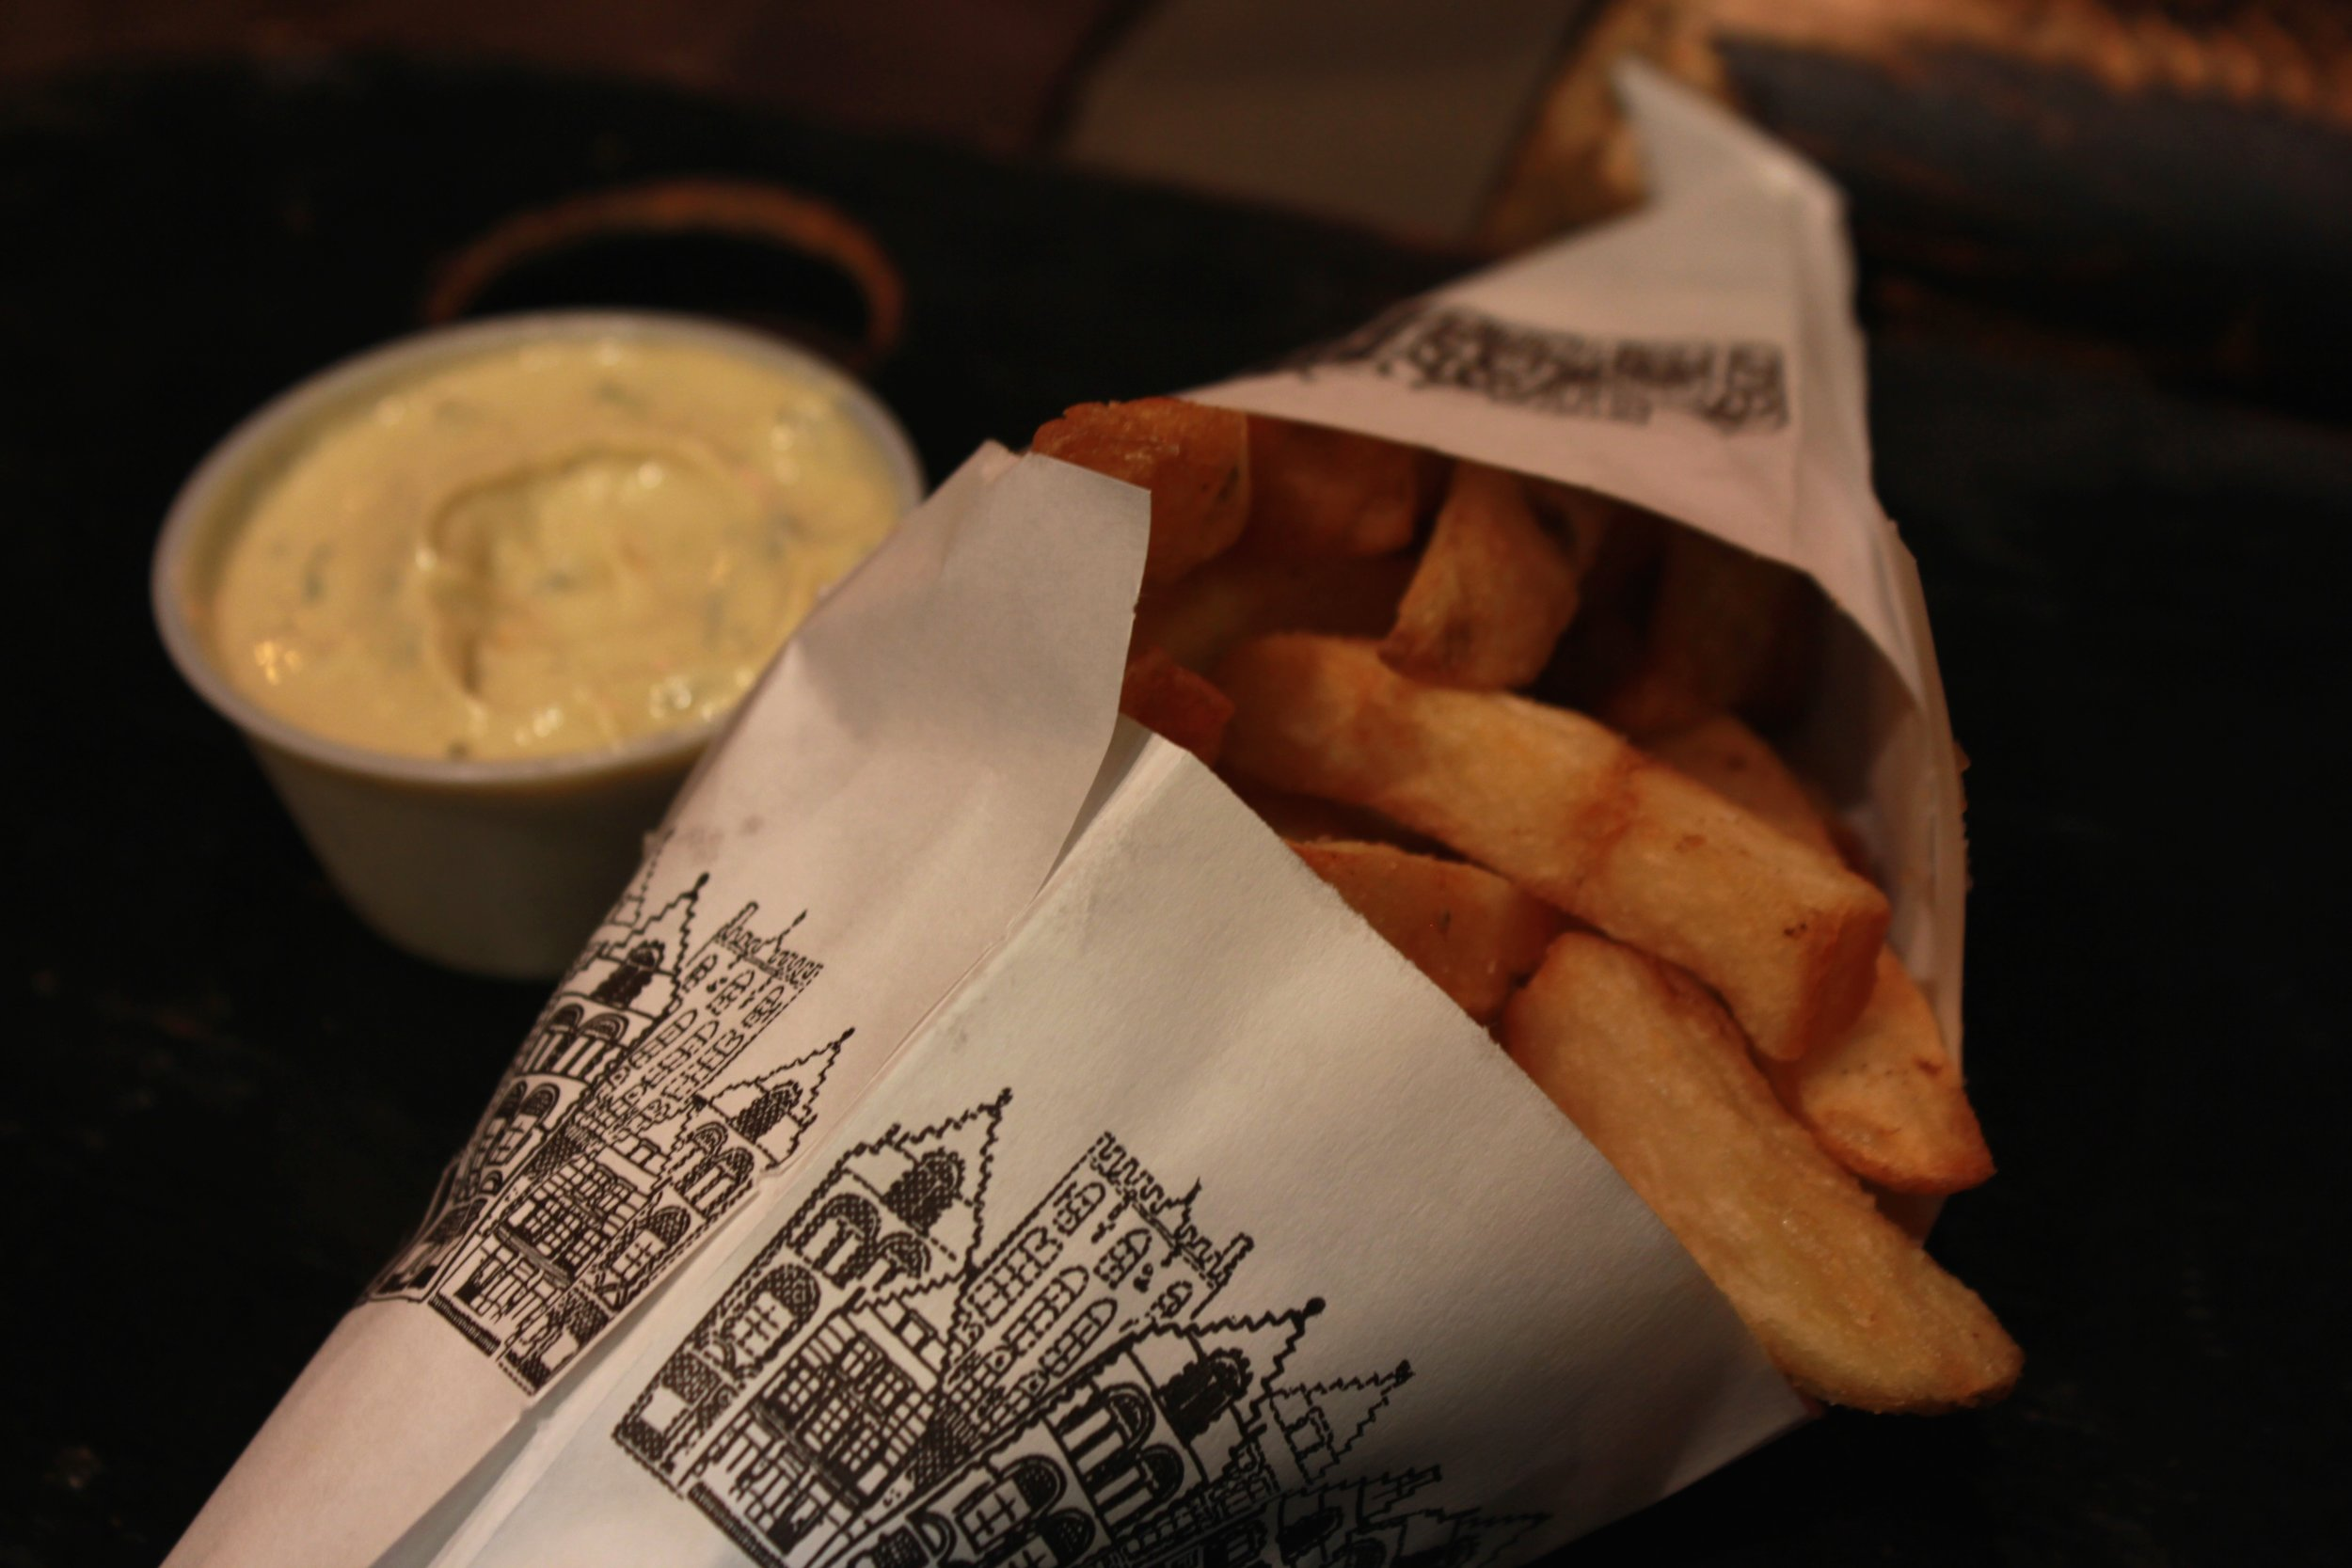 Belgian fries with a rosemary garlic mayonnaise at Pommes Frites